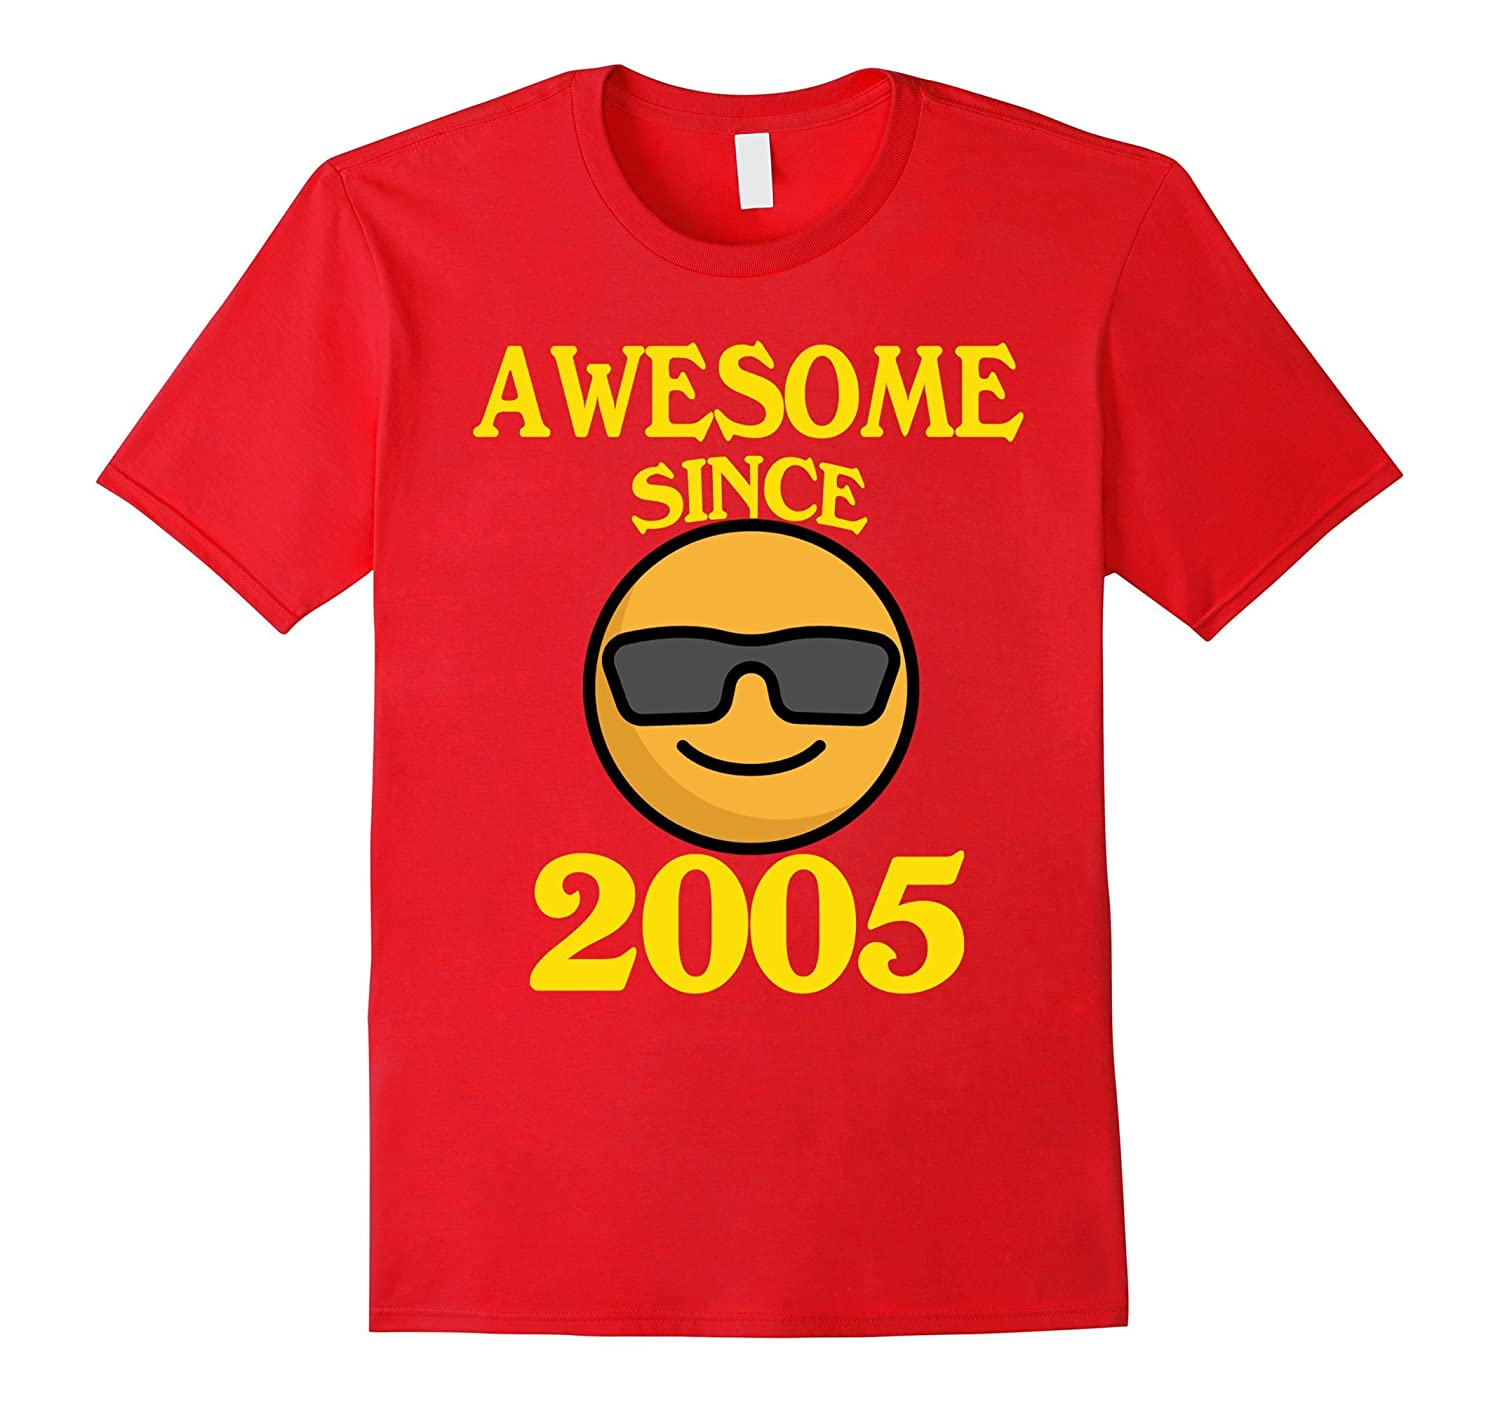 Cool face awesome since 2005 shirt 12 years old 12th shirt for Cool t shirts for 12 year olds